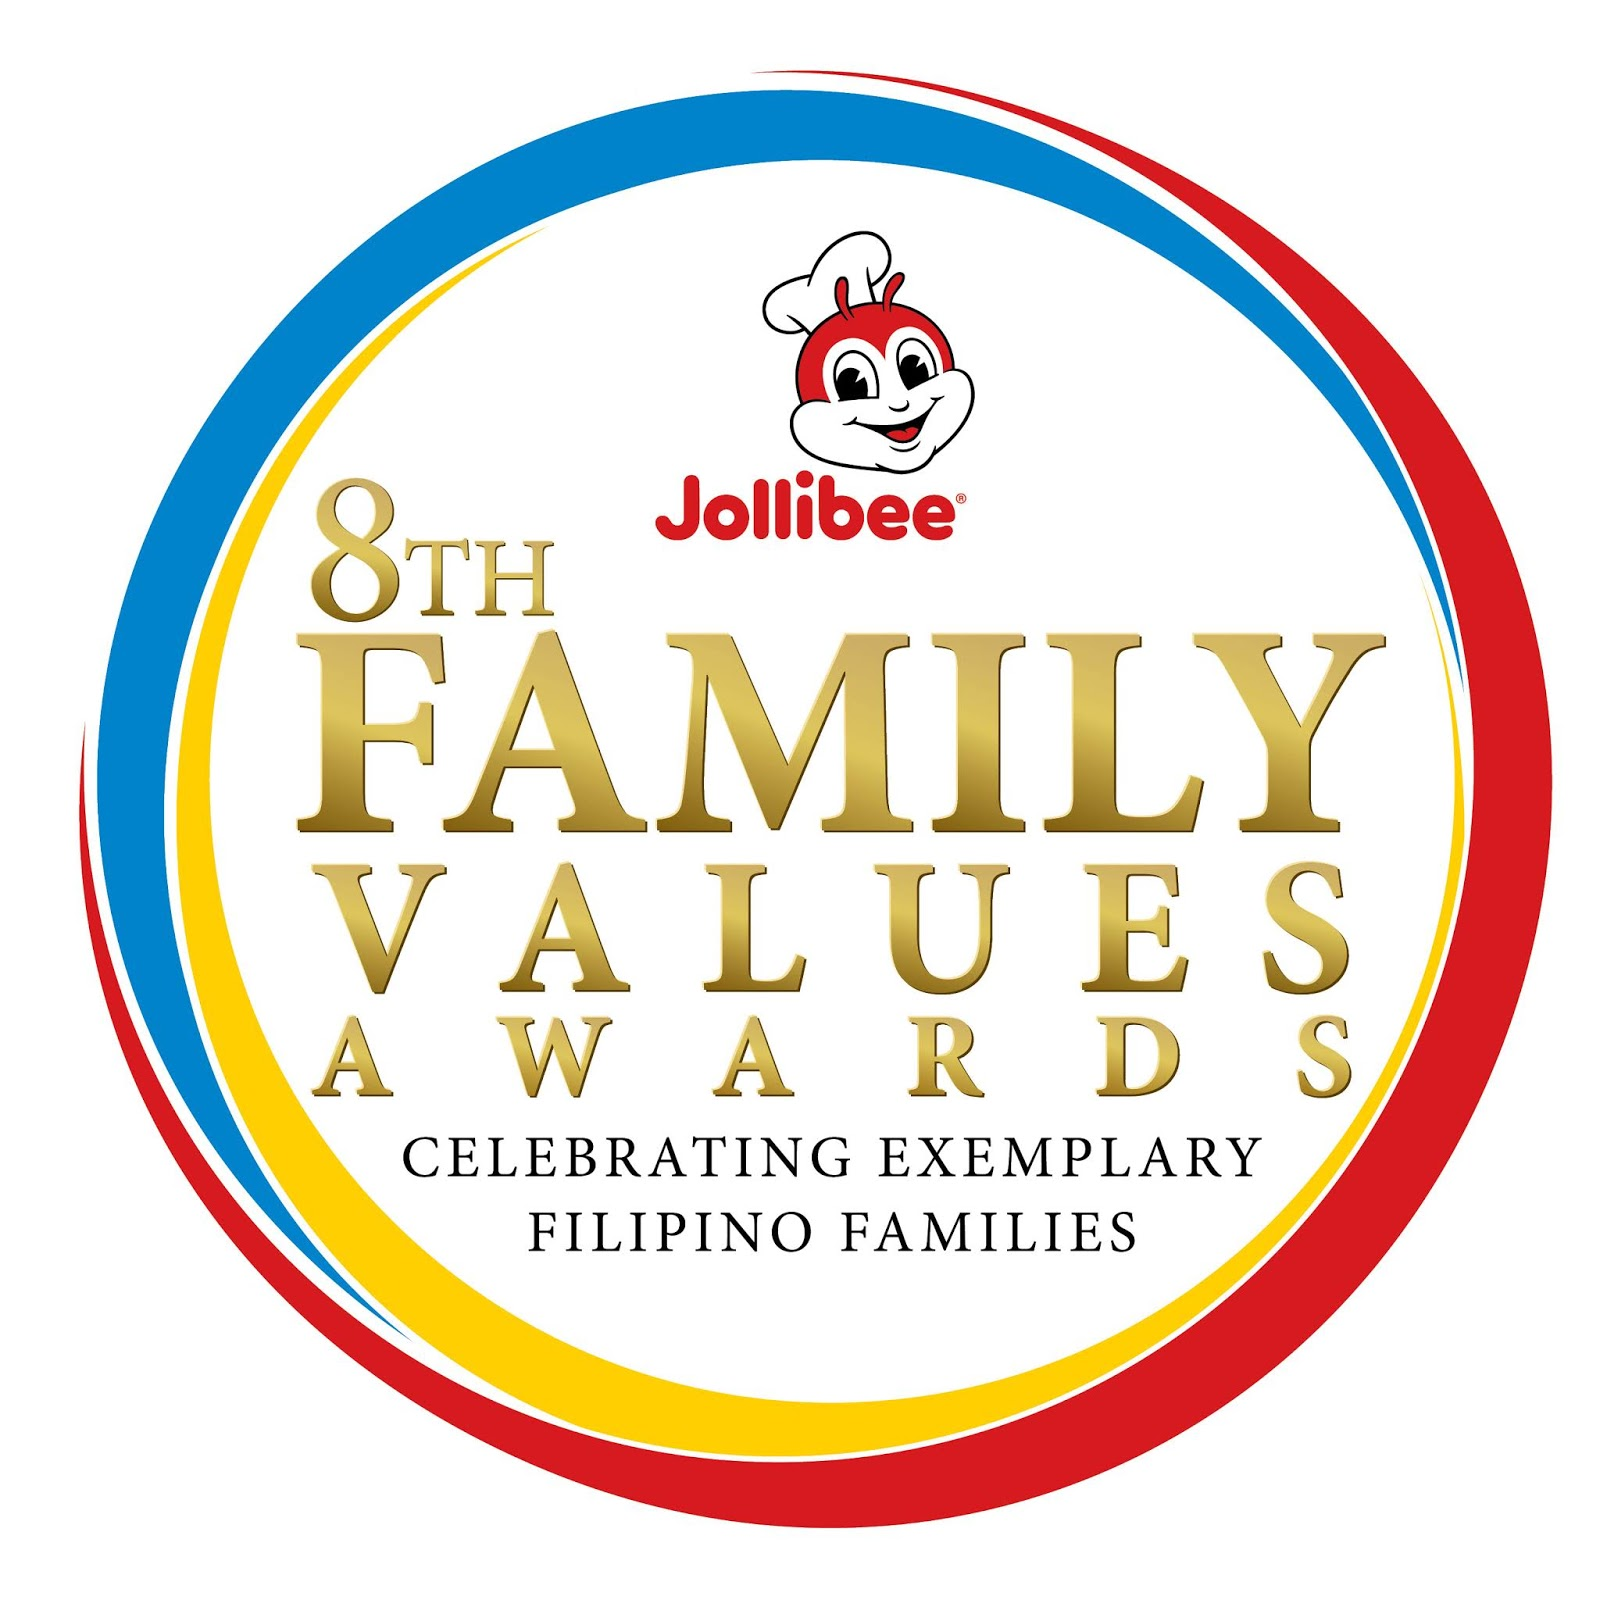 This is E-Life: Jollibee Family Values Awards continues to recognize